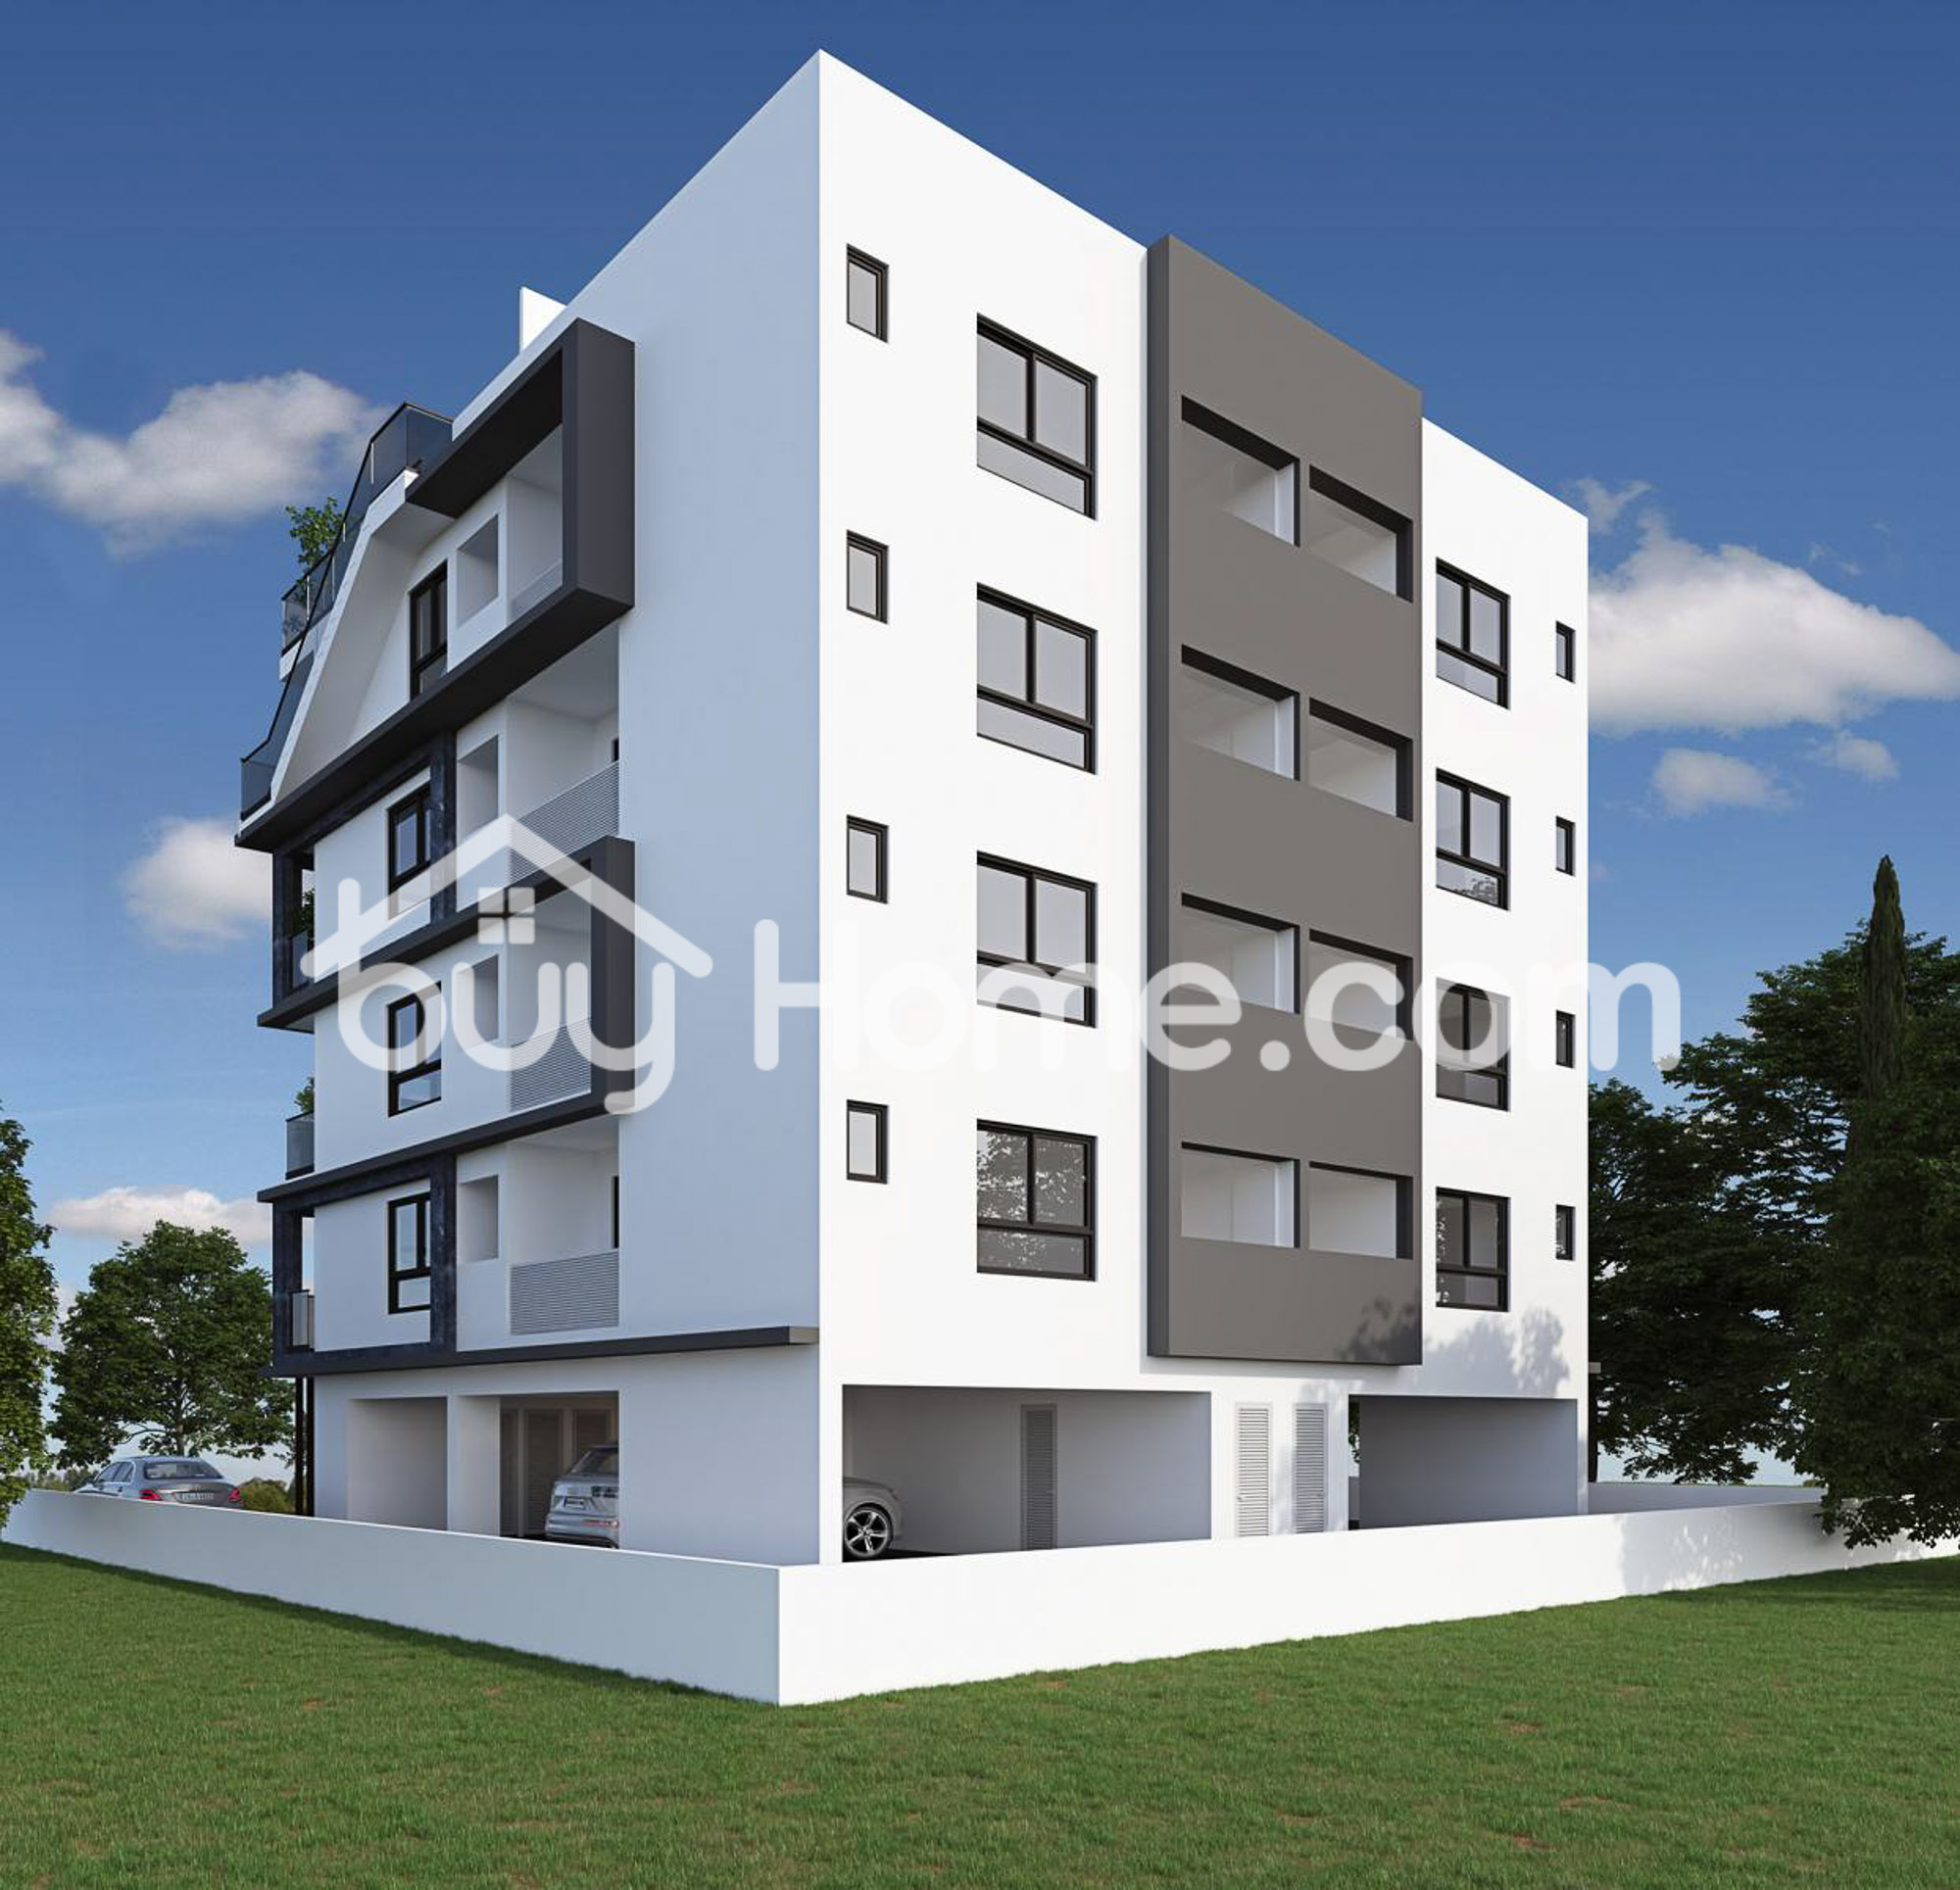 2 BDR Ap. with roof garden | BuyHome